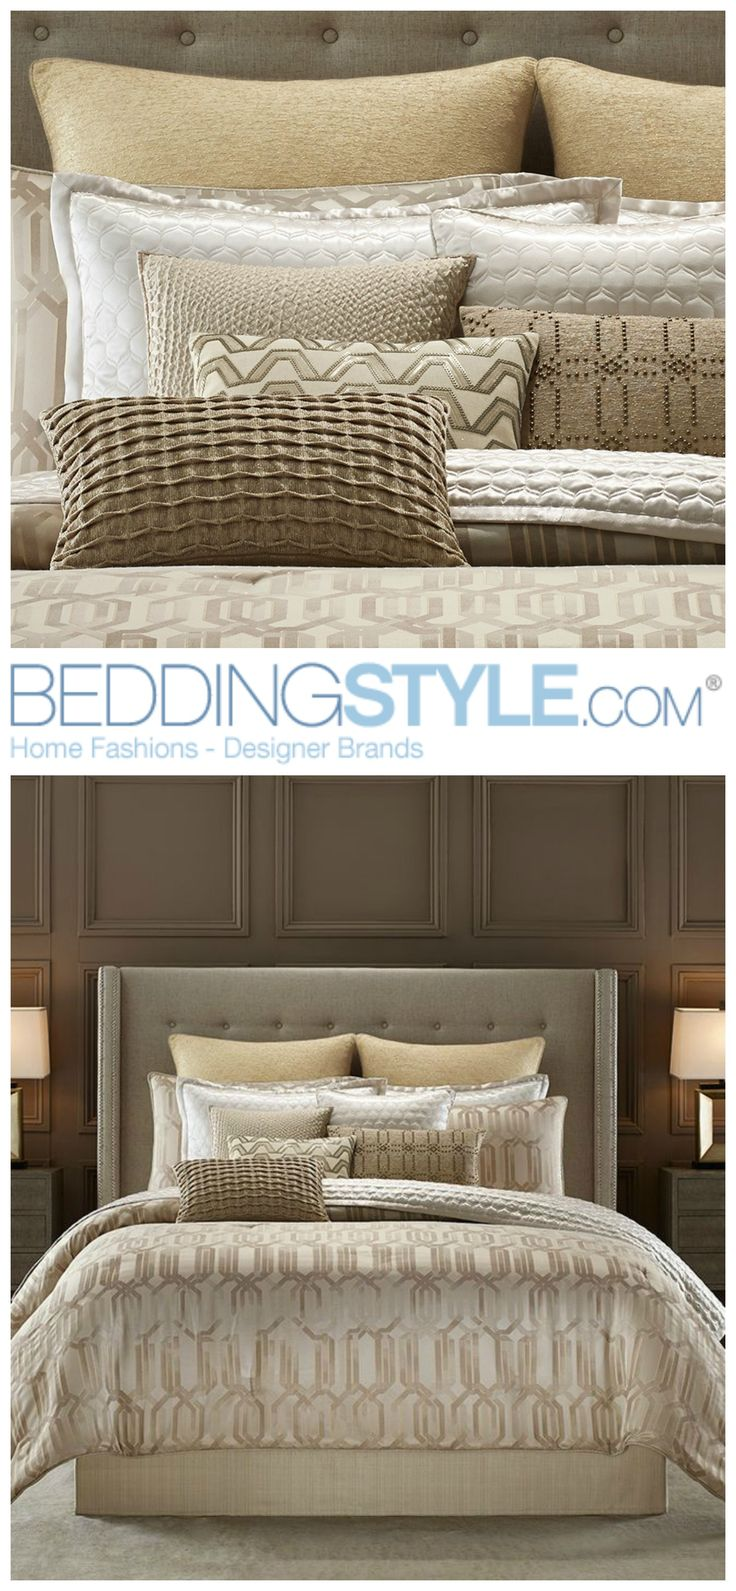 candice olson interplay bedding beddingstyle bed gold bedroom candiceolson hgtv